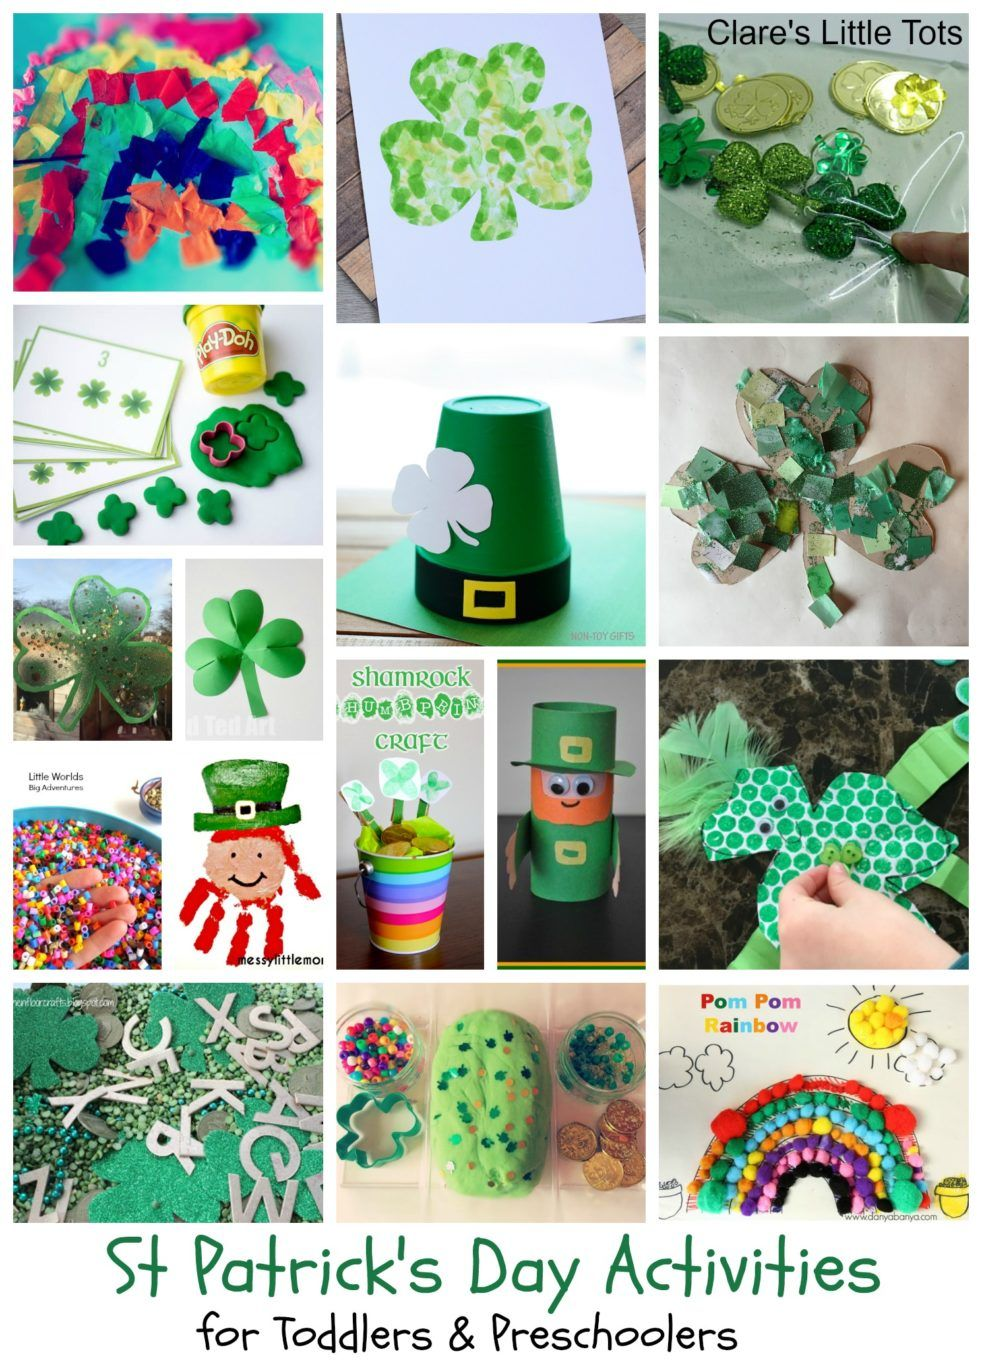 St Patrick\'s Day Activities for Kids | Stem activities, Sensory play ...